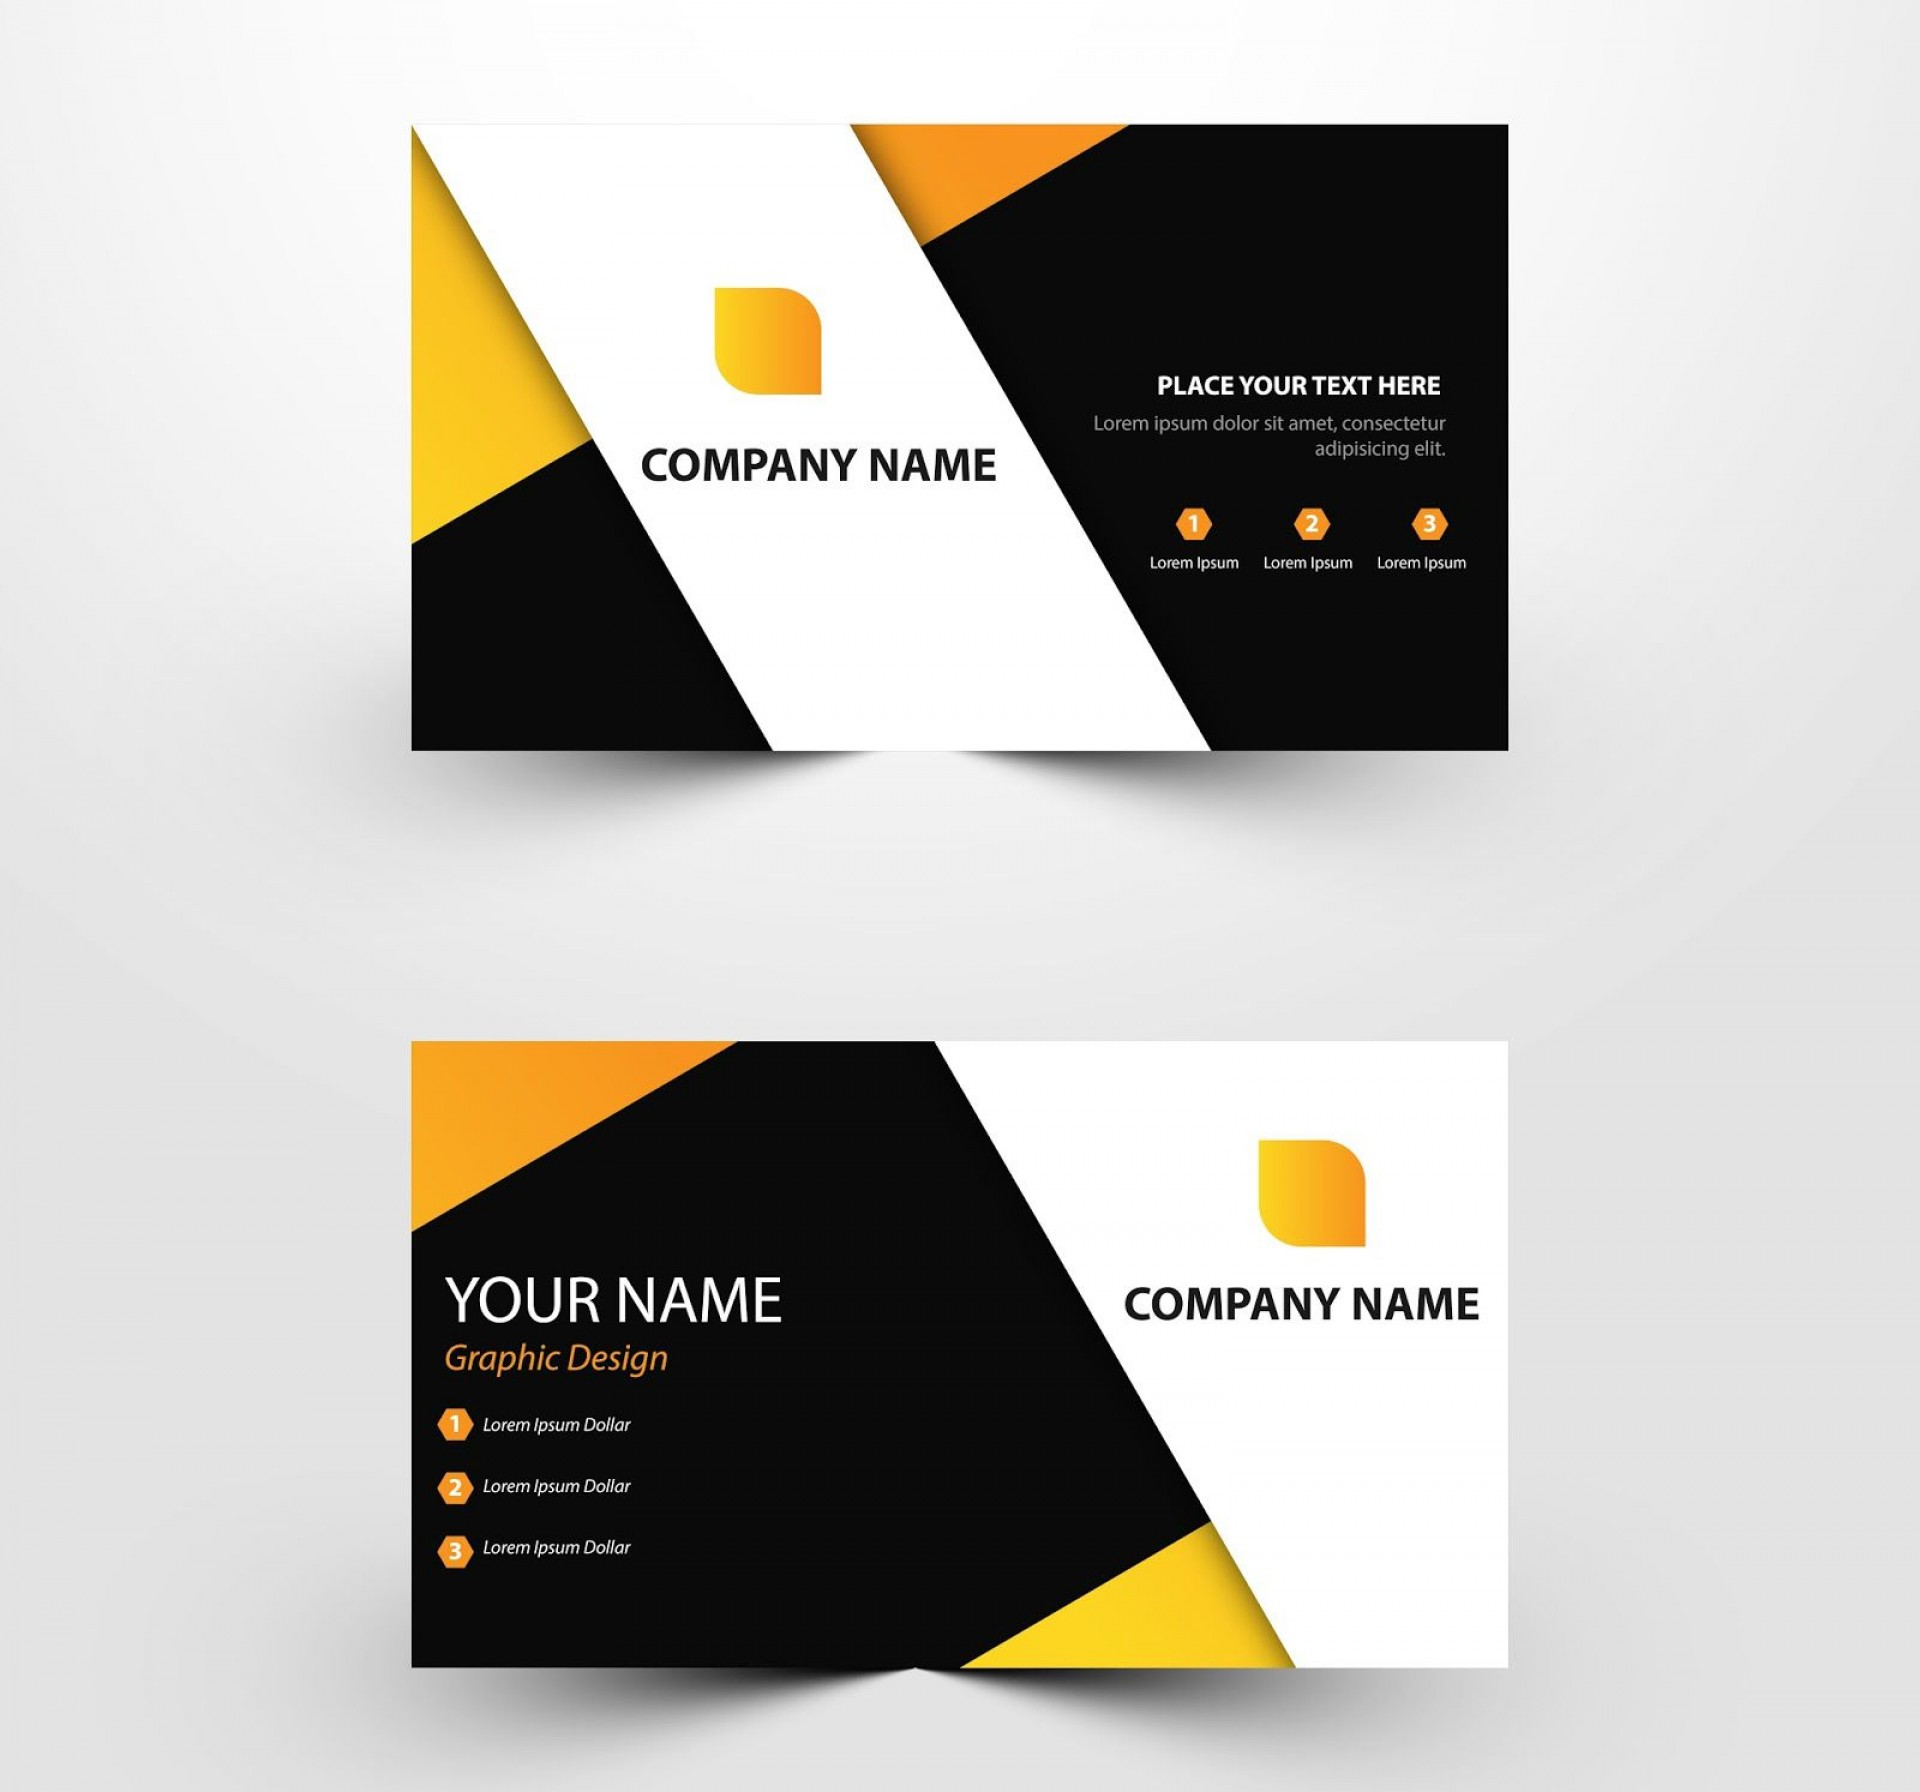 009 Fearsome Download Busines Card Template Concept  For Microsoft Publisher Adobe Illustrator Visiting Psd1920